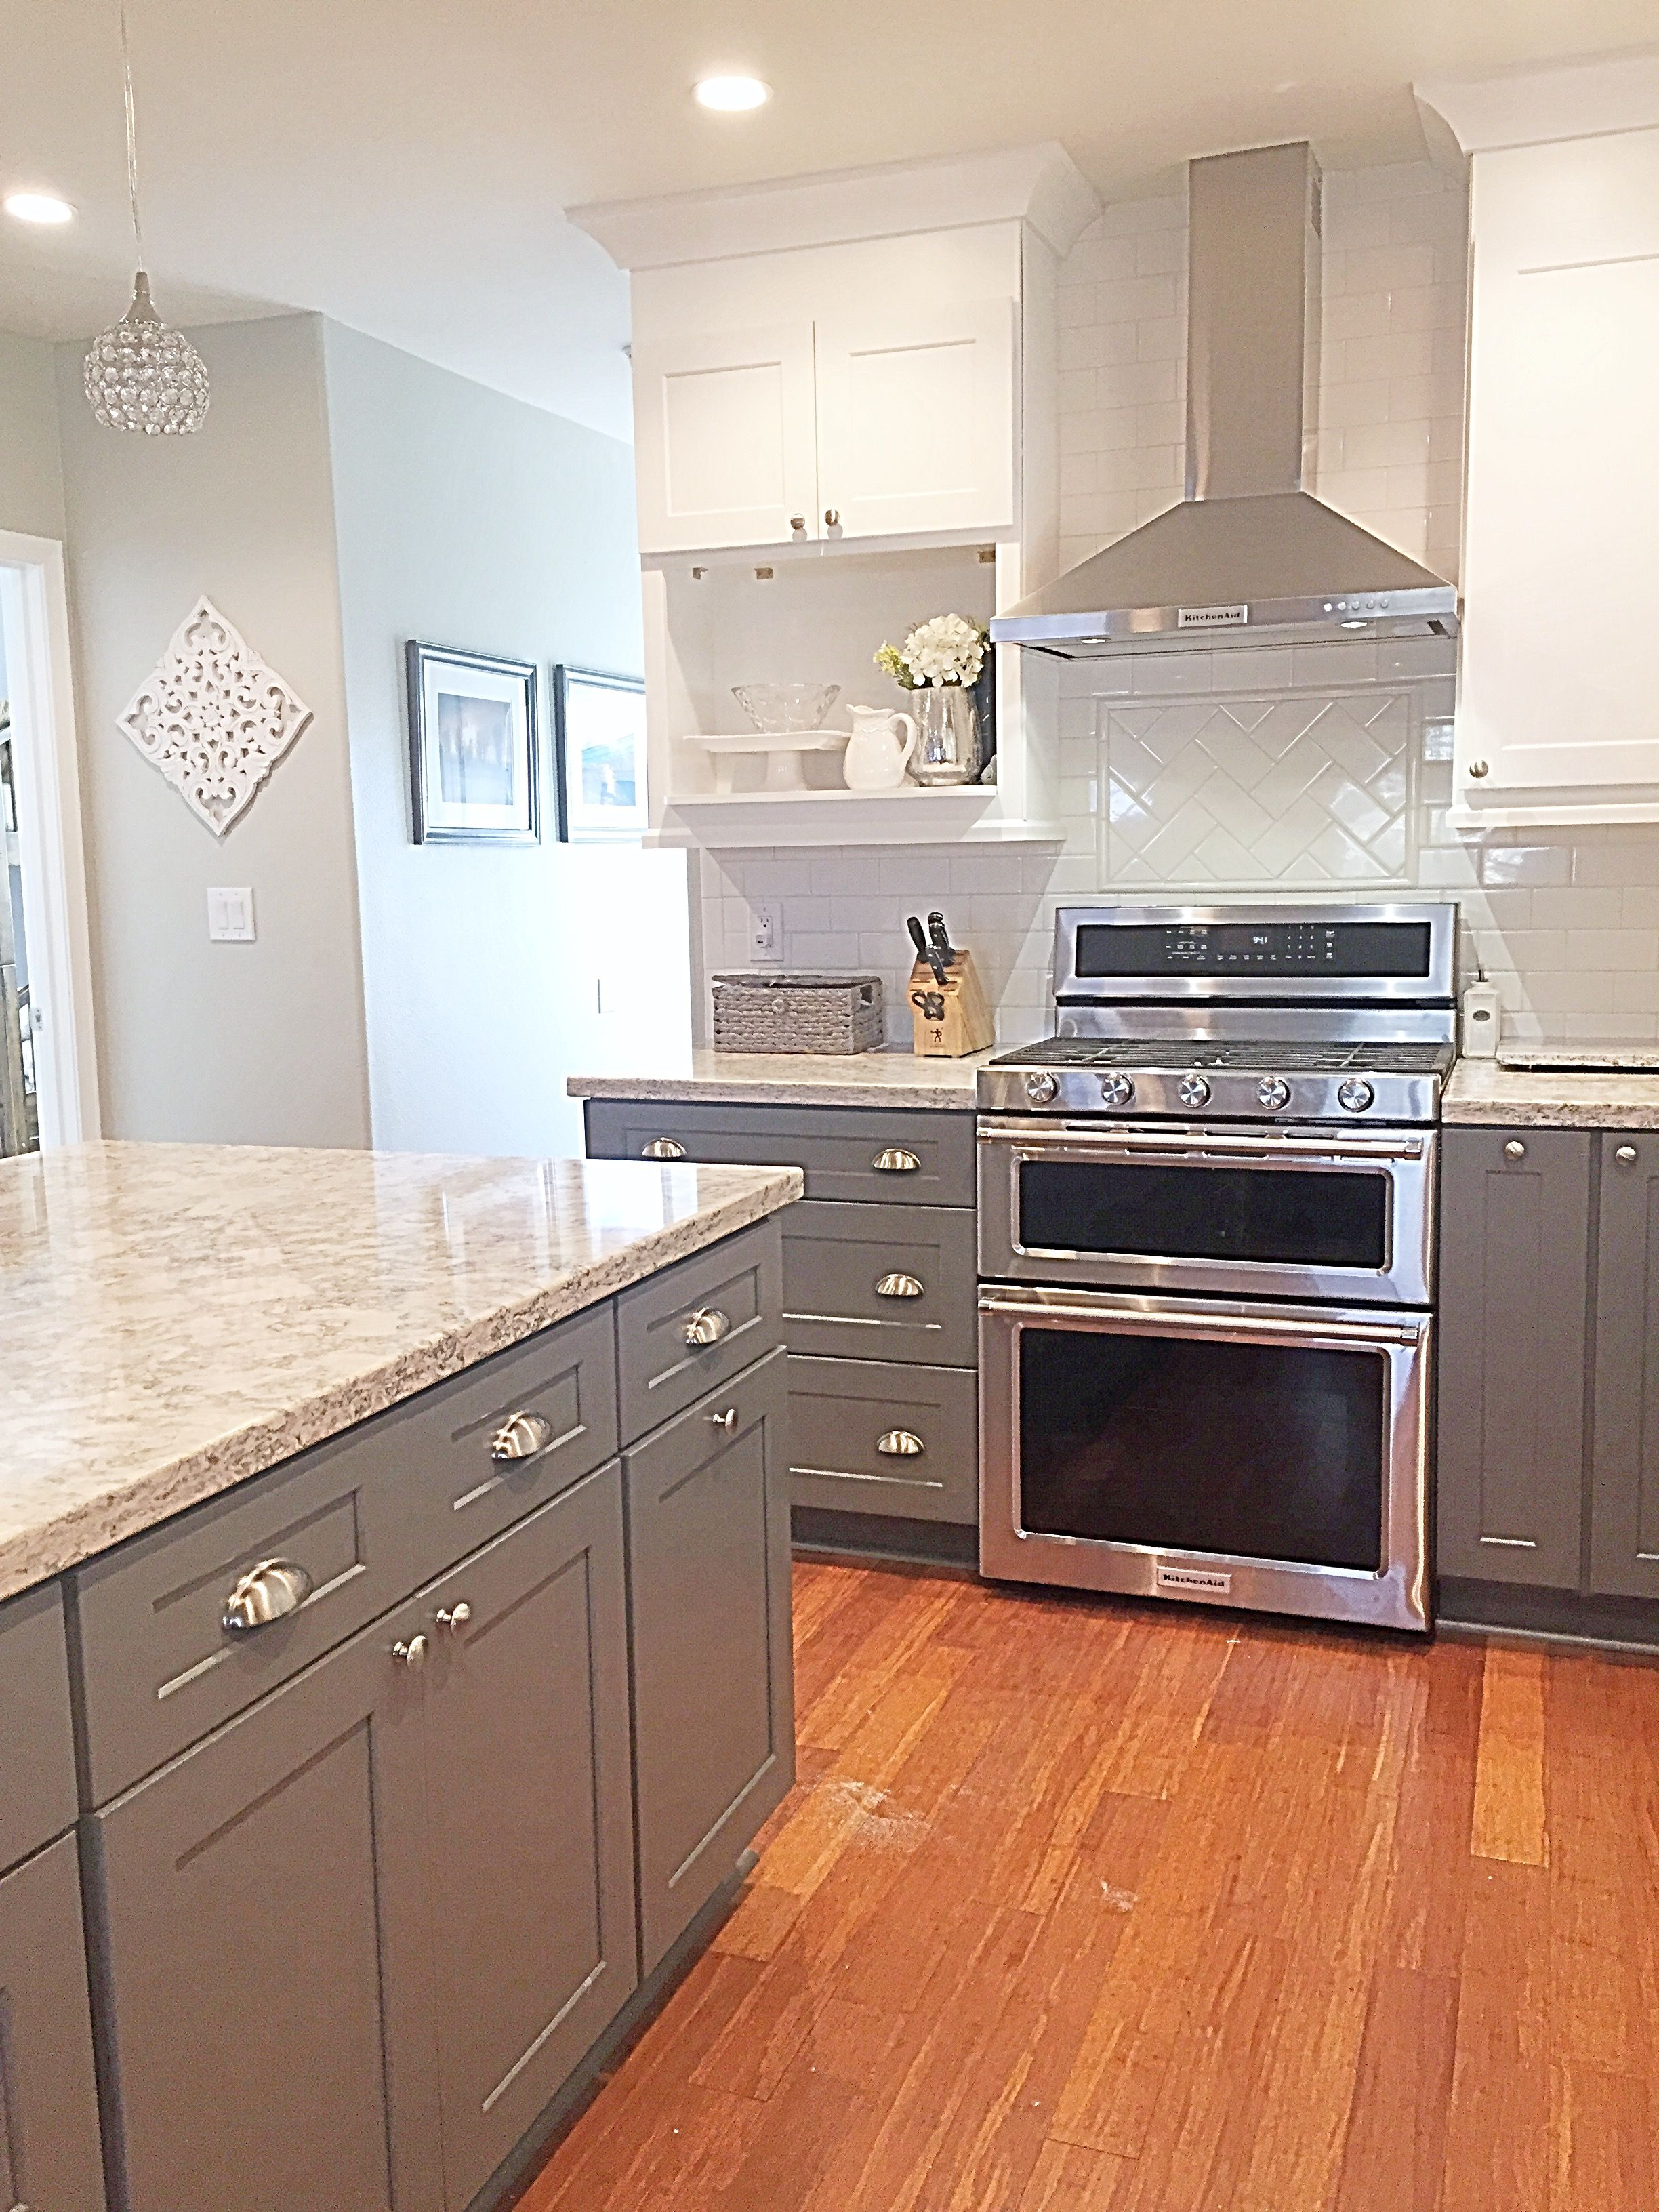 Cambria Quartz Berwyn Two Tone Kitchen Gray And White Kitchen Quartz Countertop Kitchen Cabinet Design Kitchen Cabinets Decor Kitchen Cabinet Trends